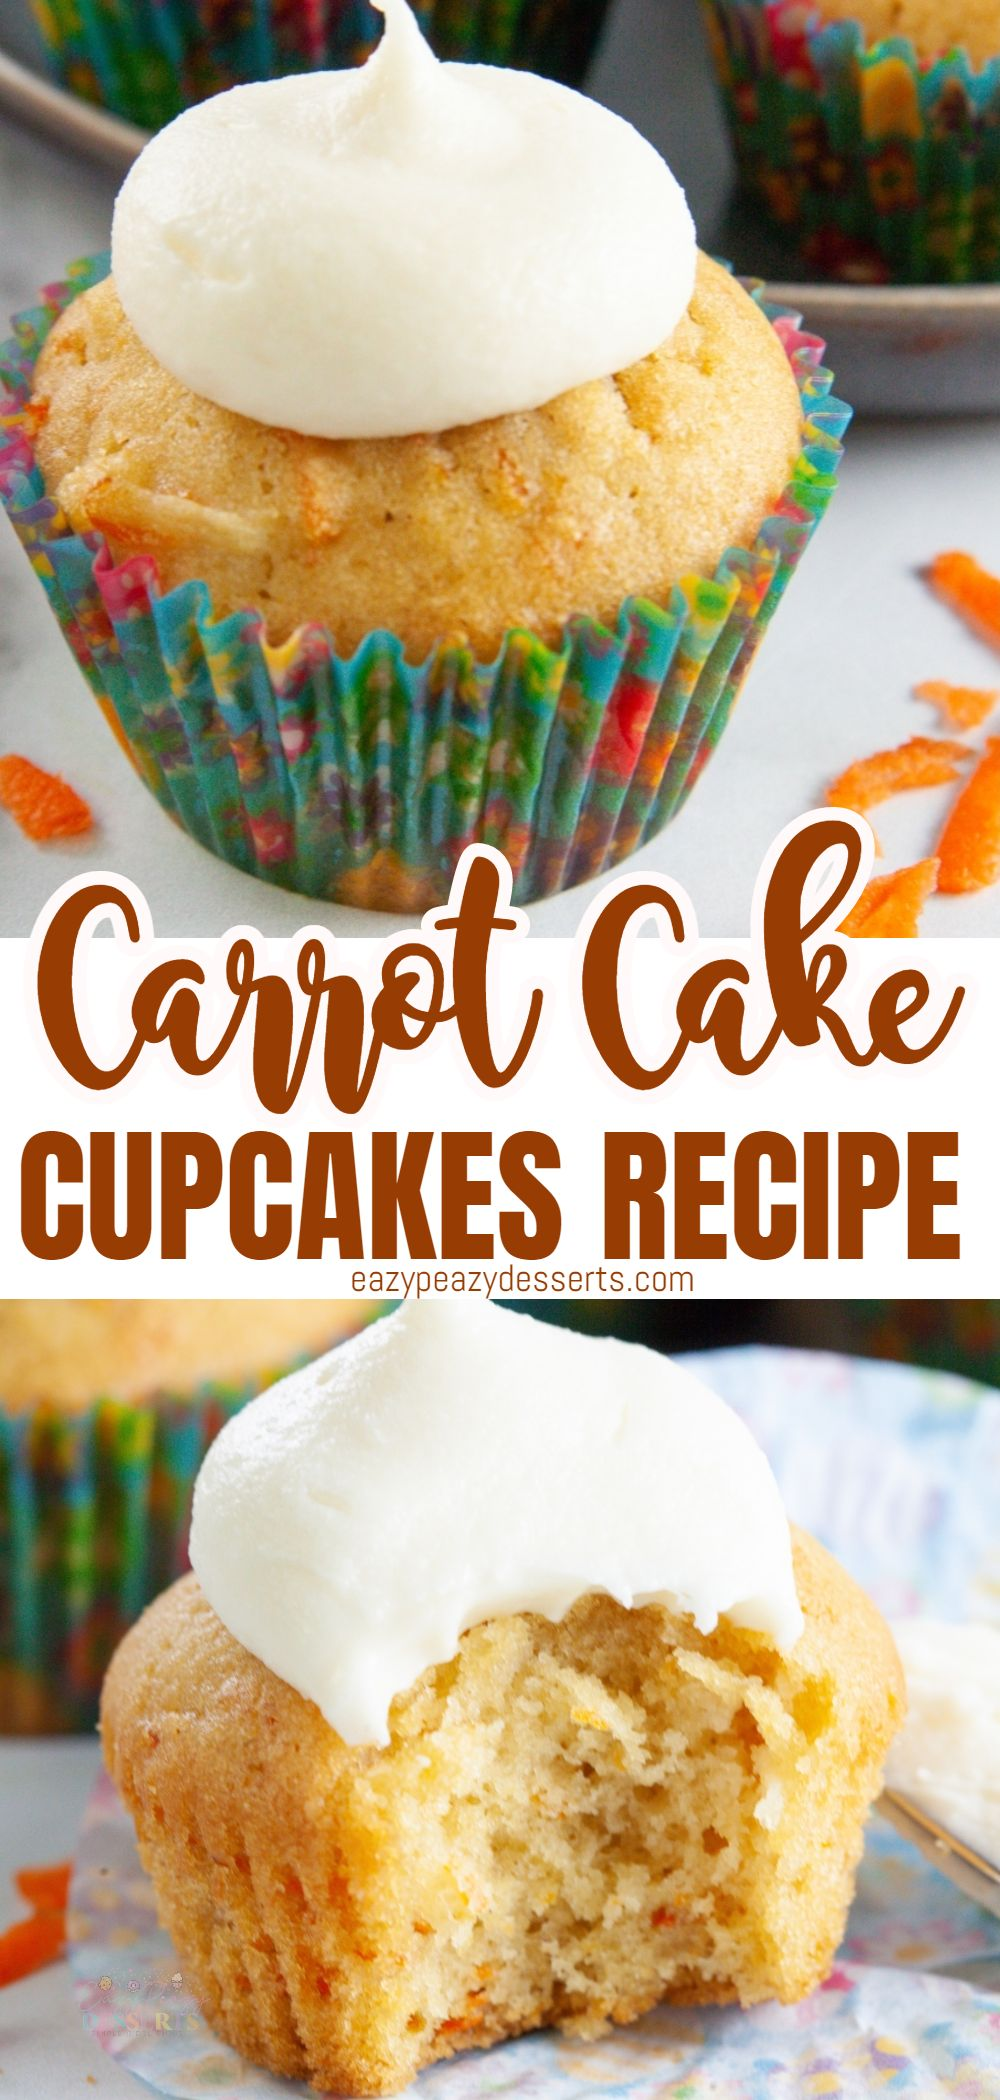 Carrot cake cupcakes are a wonderful option for a dessert, all year round! The delicious combination of carrots and spices, make this classic treat a great choice for any get-together! via @eazypeazydesserts